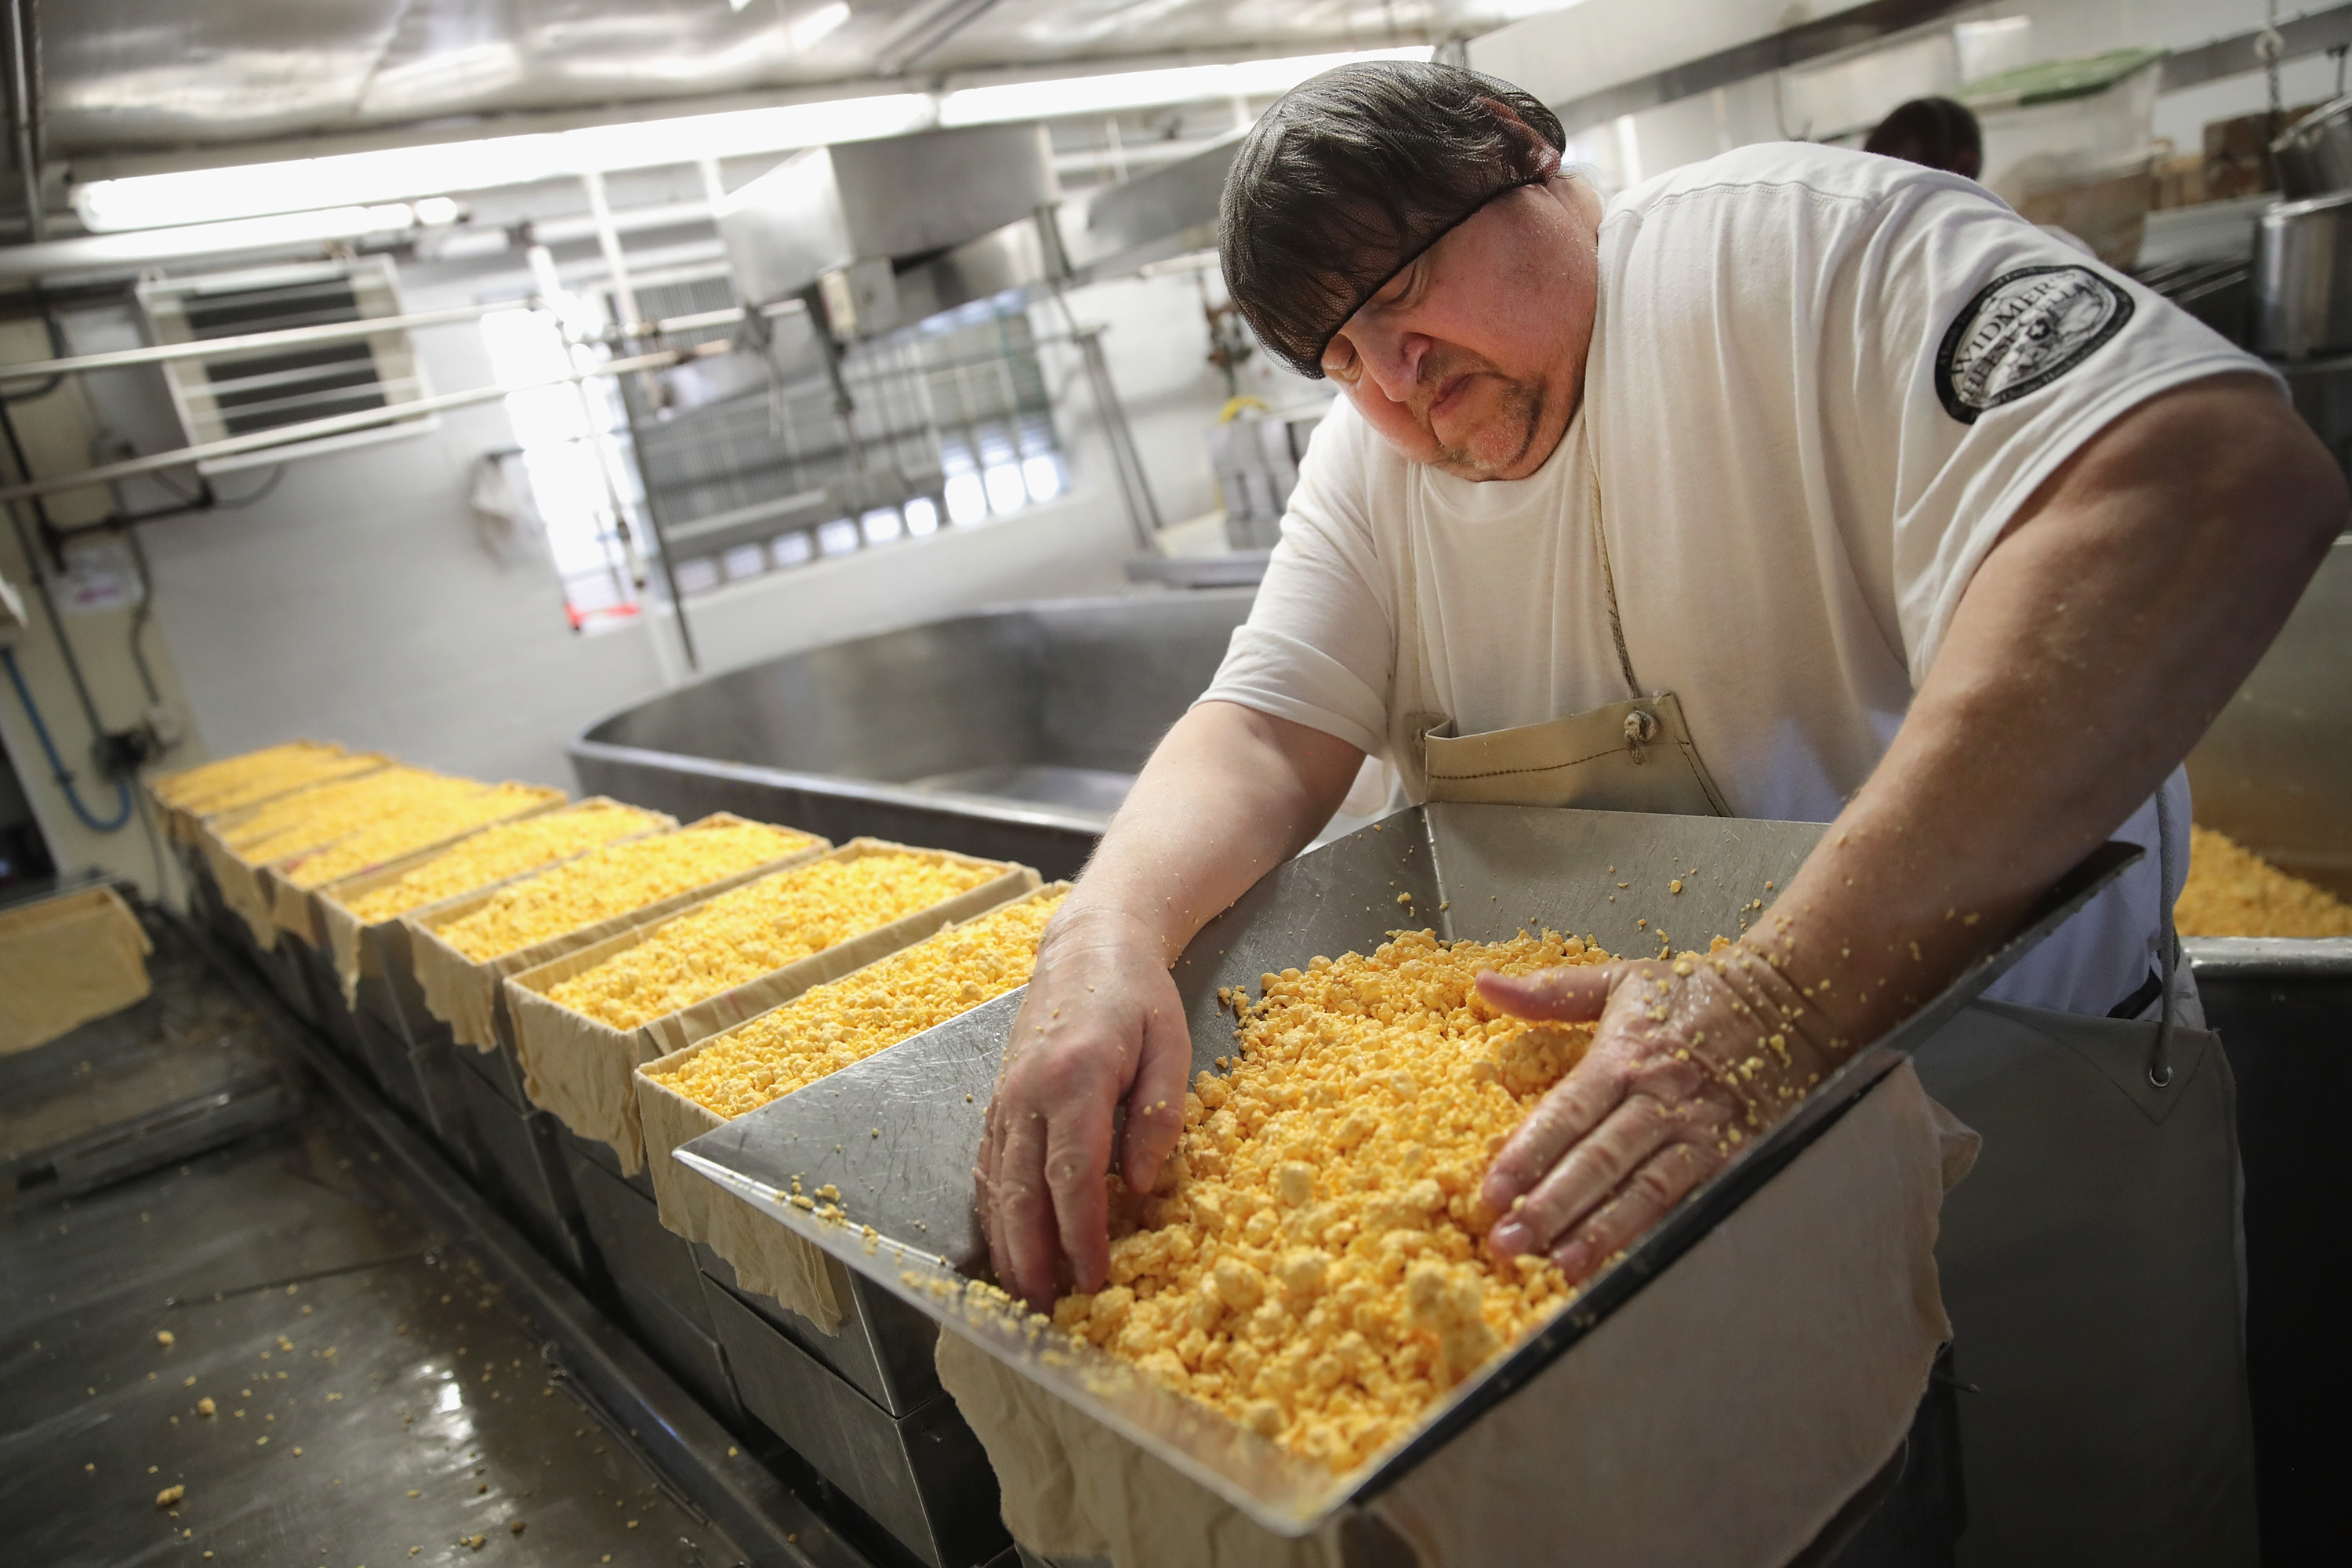 America Faces Surplus Of Cheese With Record Dairy Production